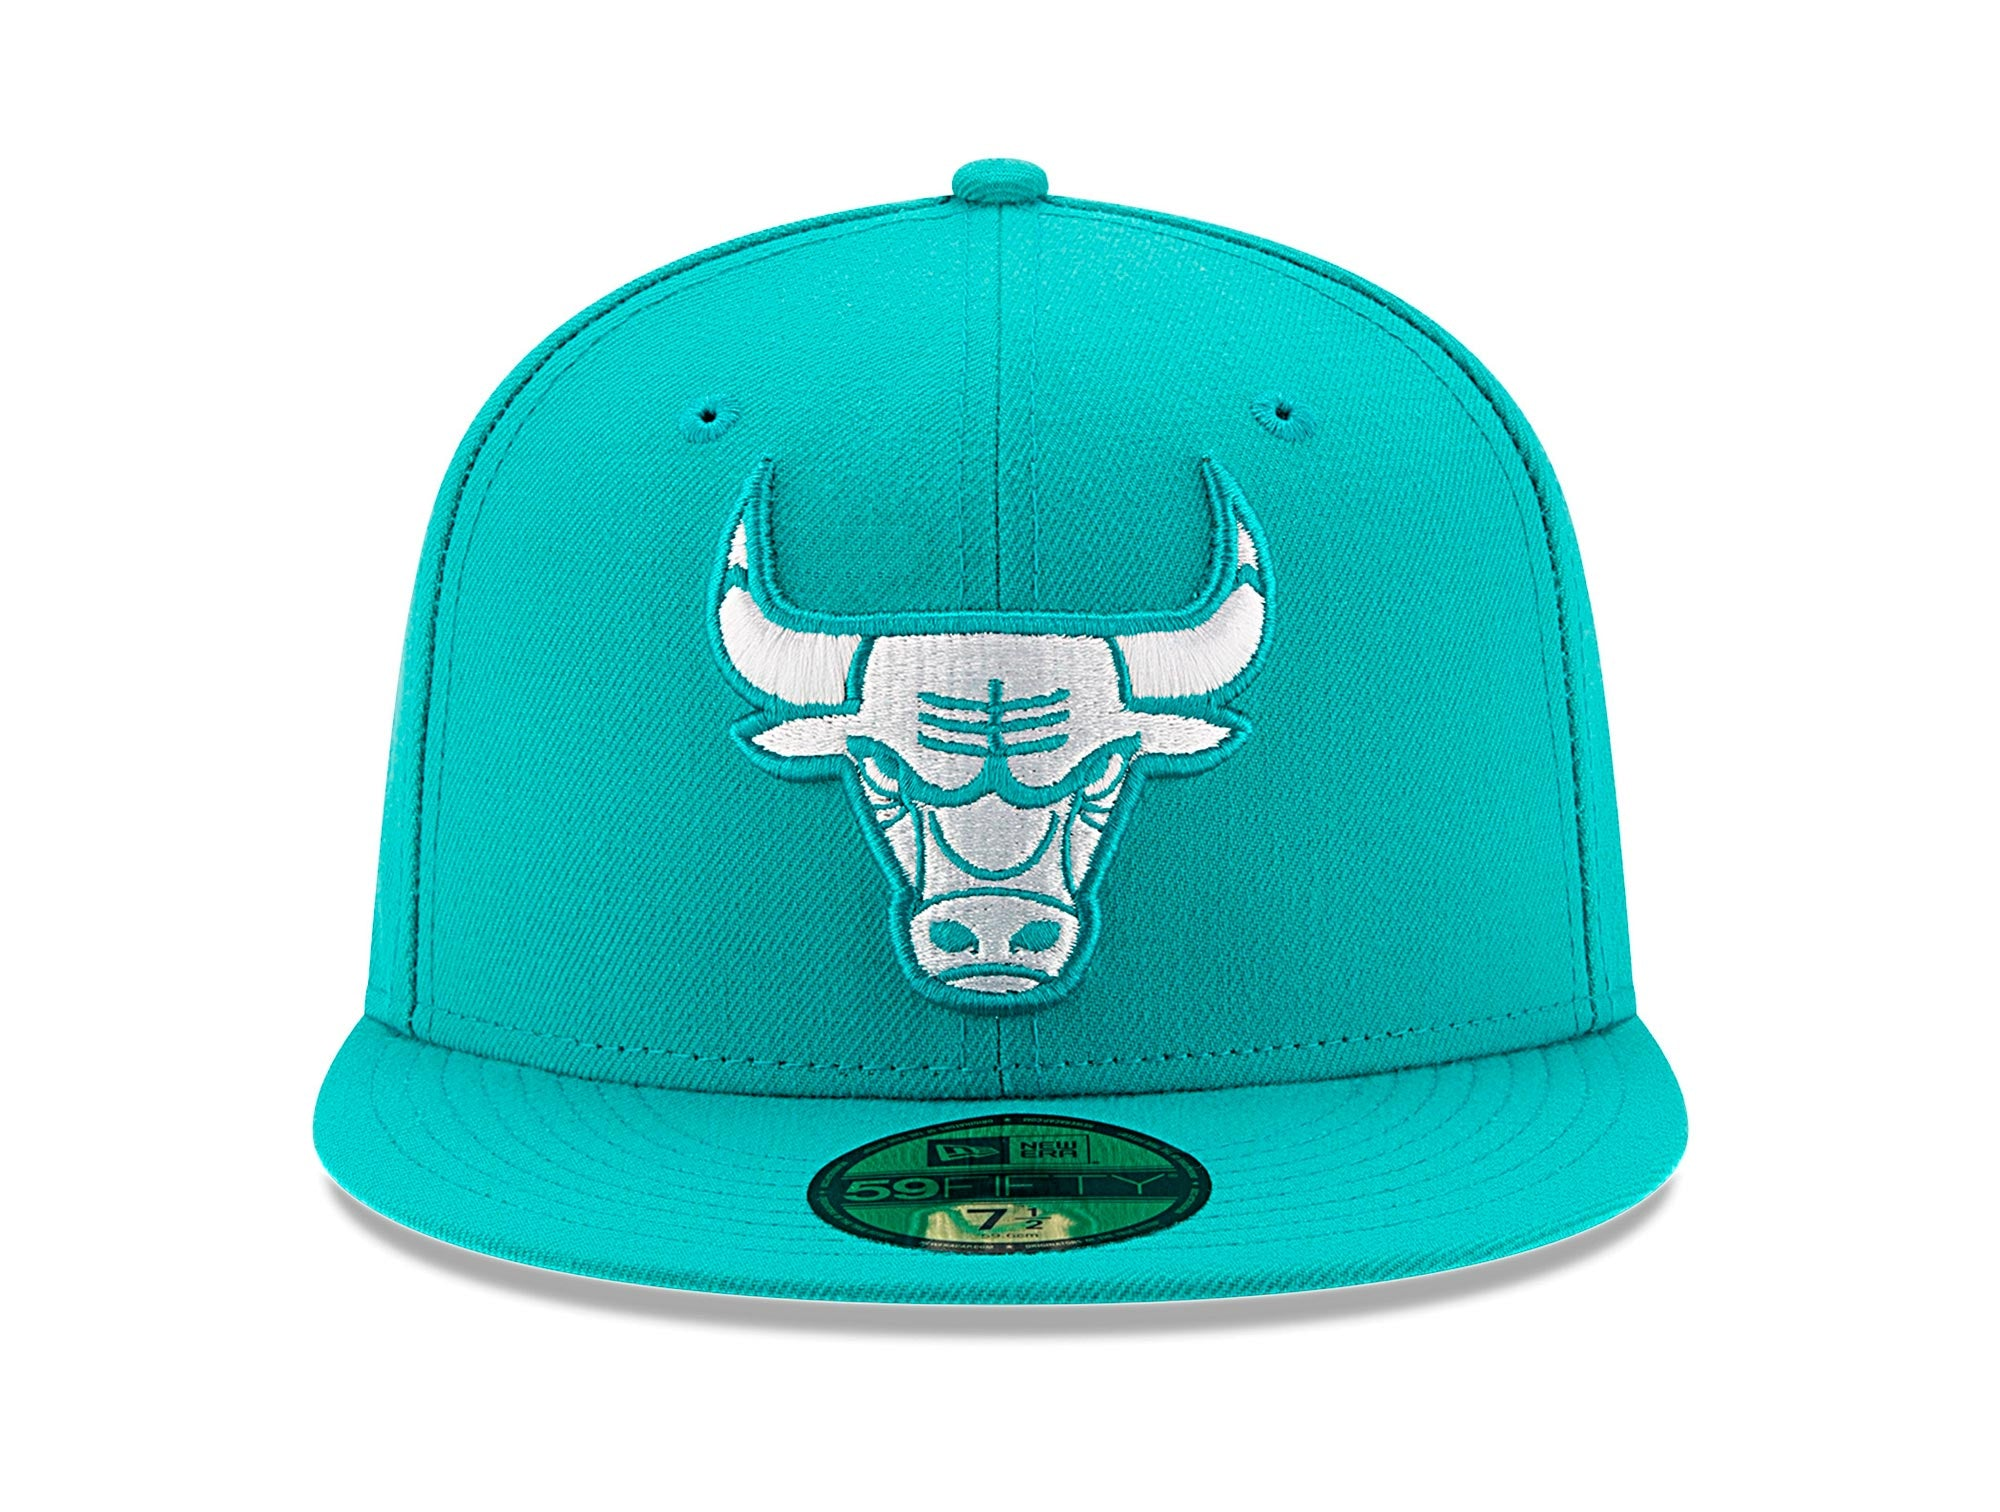 Jockey New Era Chicago Bulls 5950 Unisex Celeste